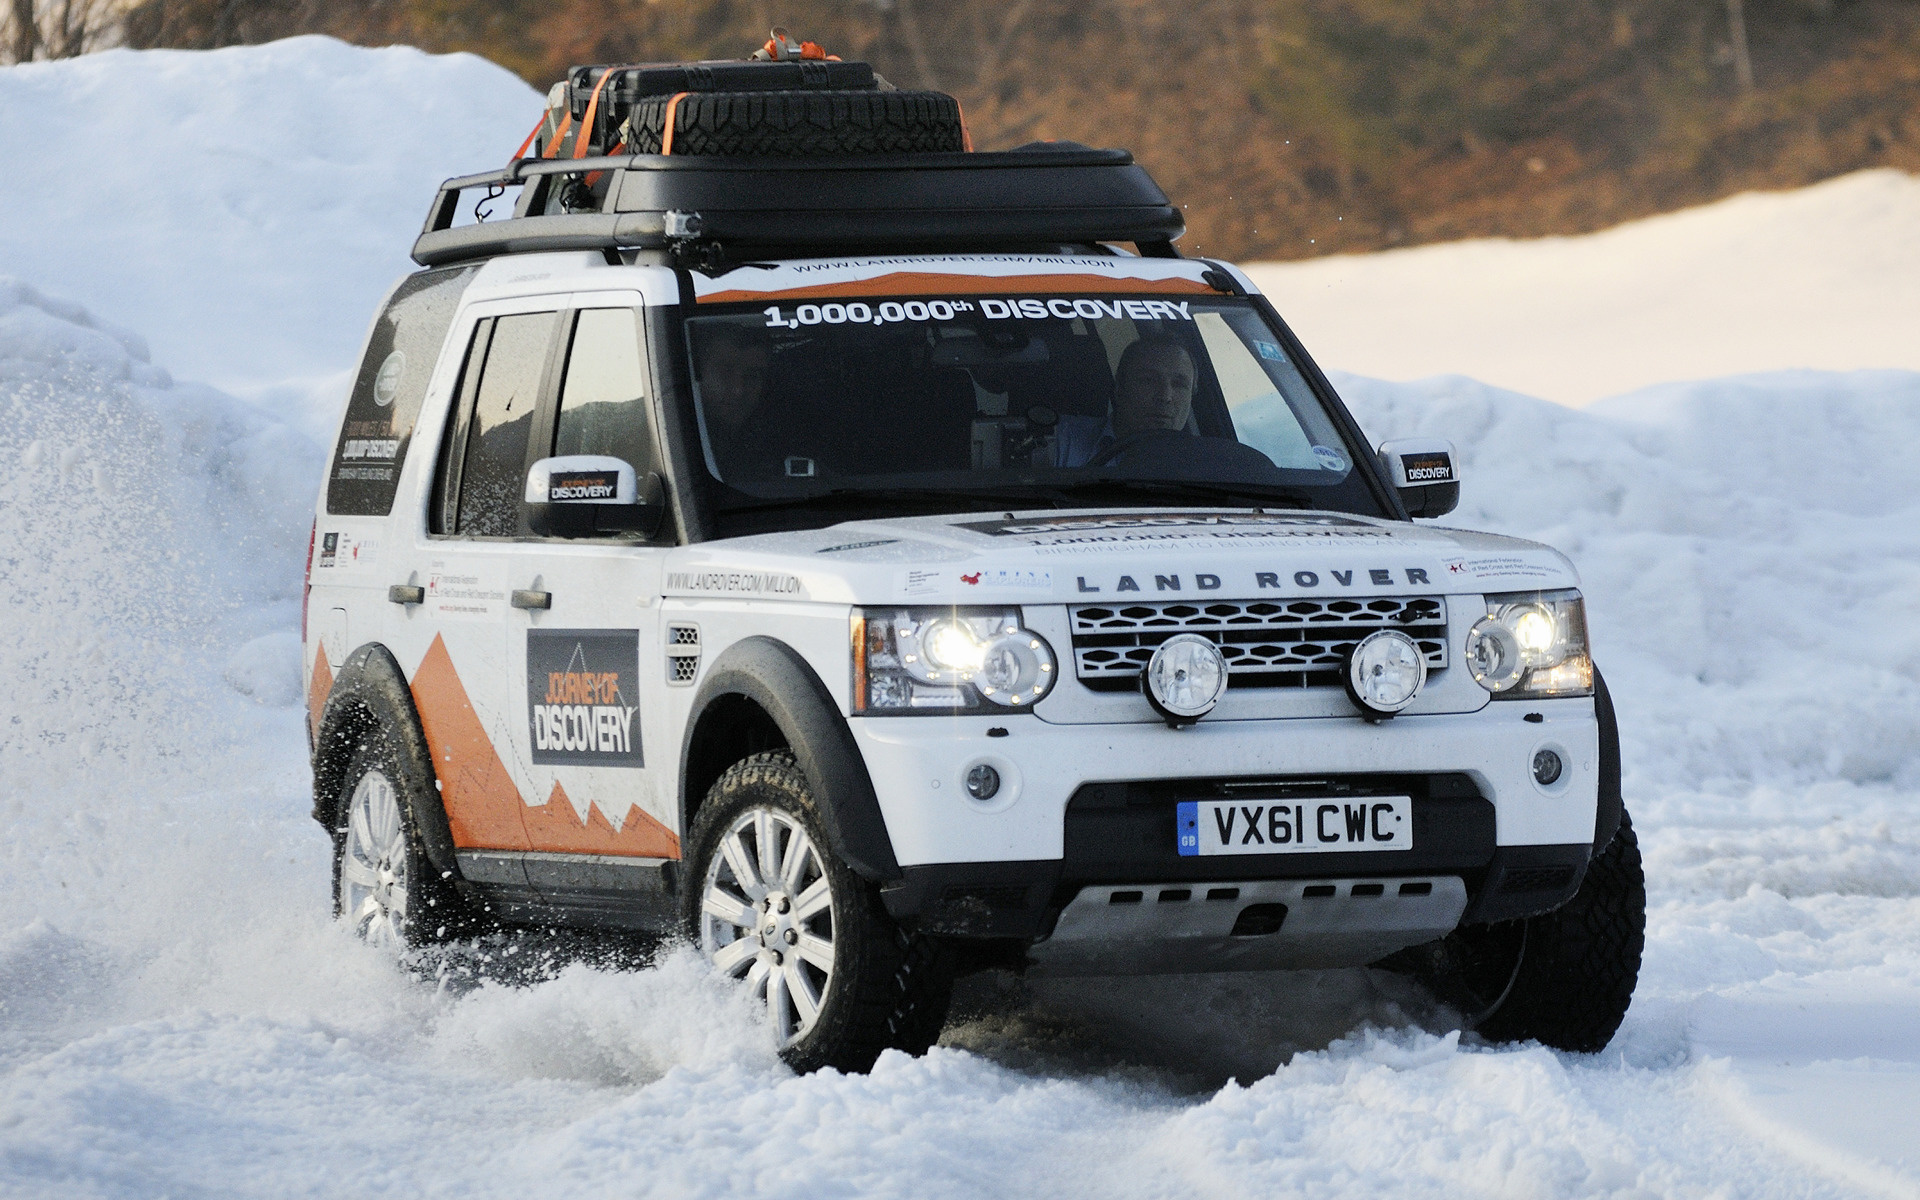 Land Rover Discovery 4 Expedition Vehicle 2012 Wallpapers and HD